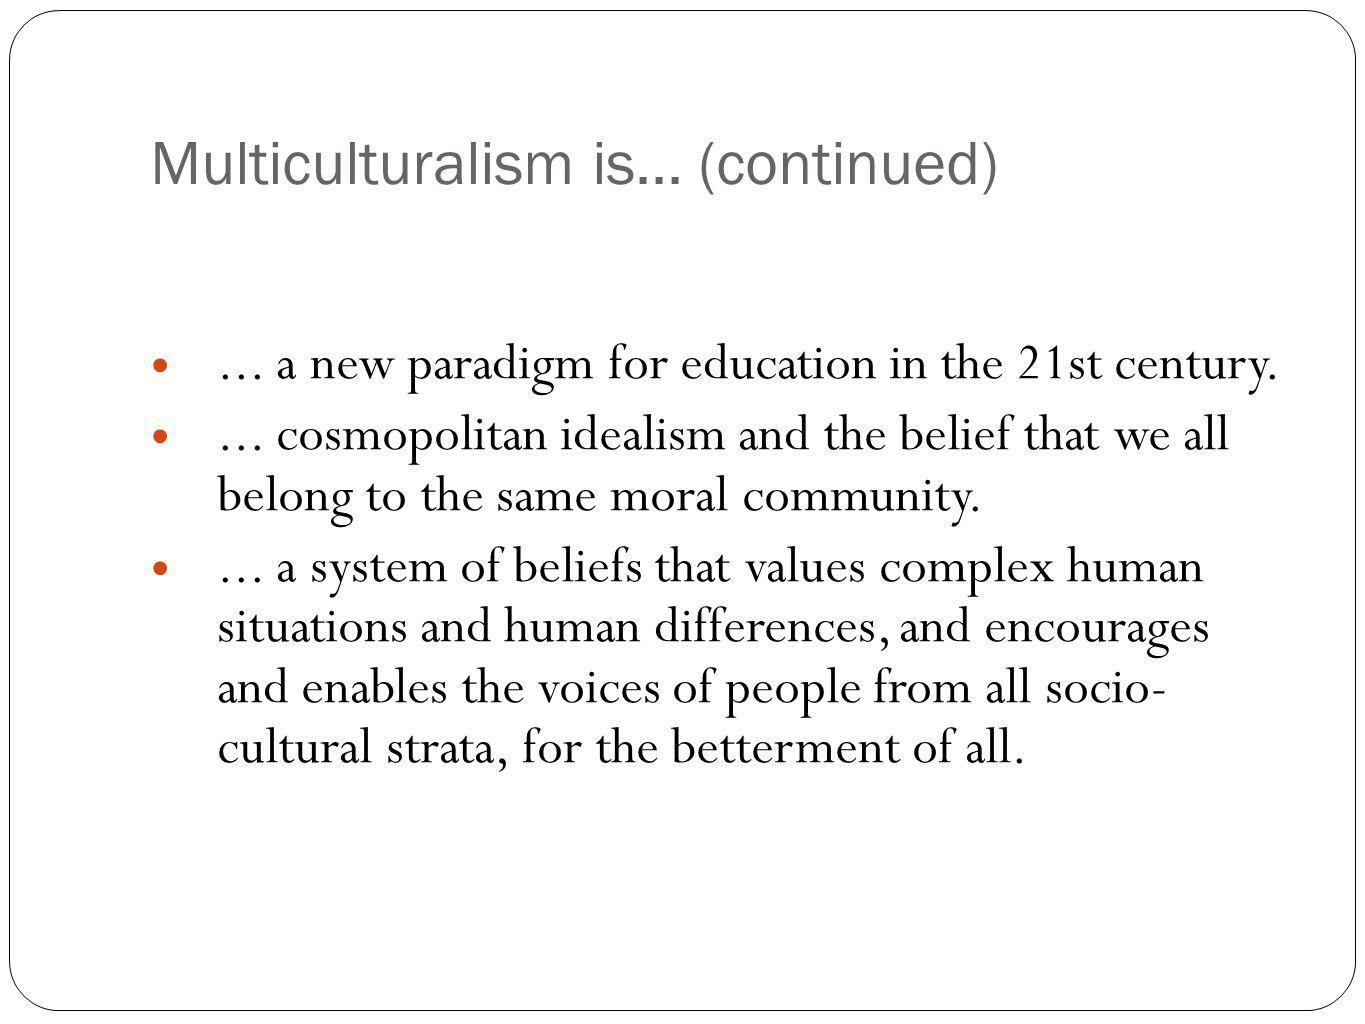 Multiculturalism is... (continued)... a new paradigm for education in the 21st century.... cosmopolitan idealism and the belief that we all belong to